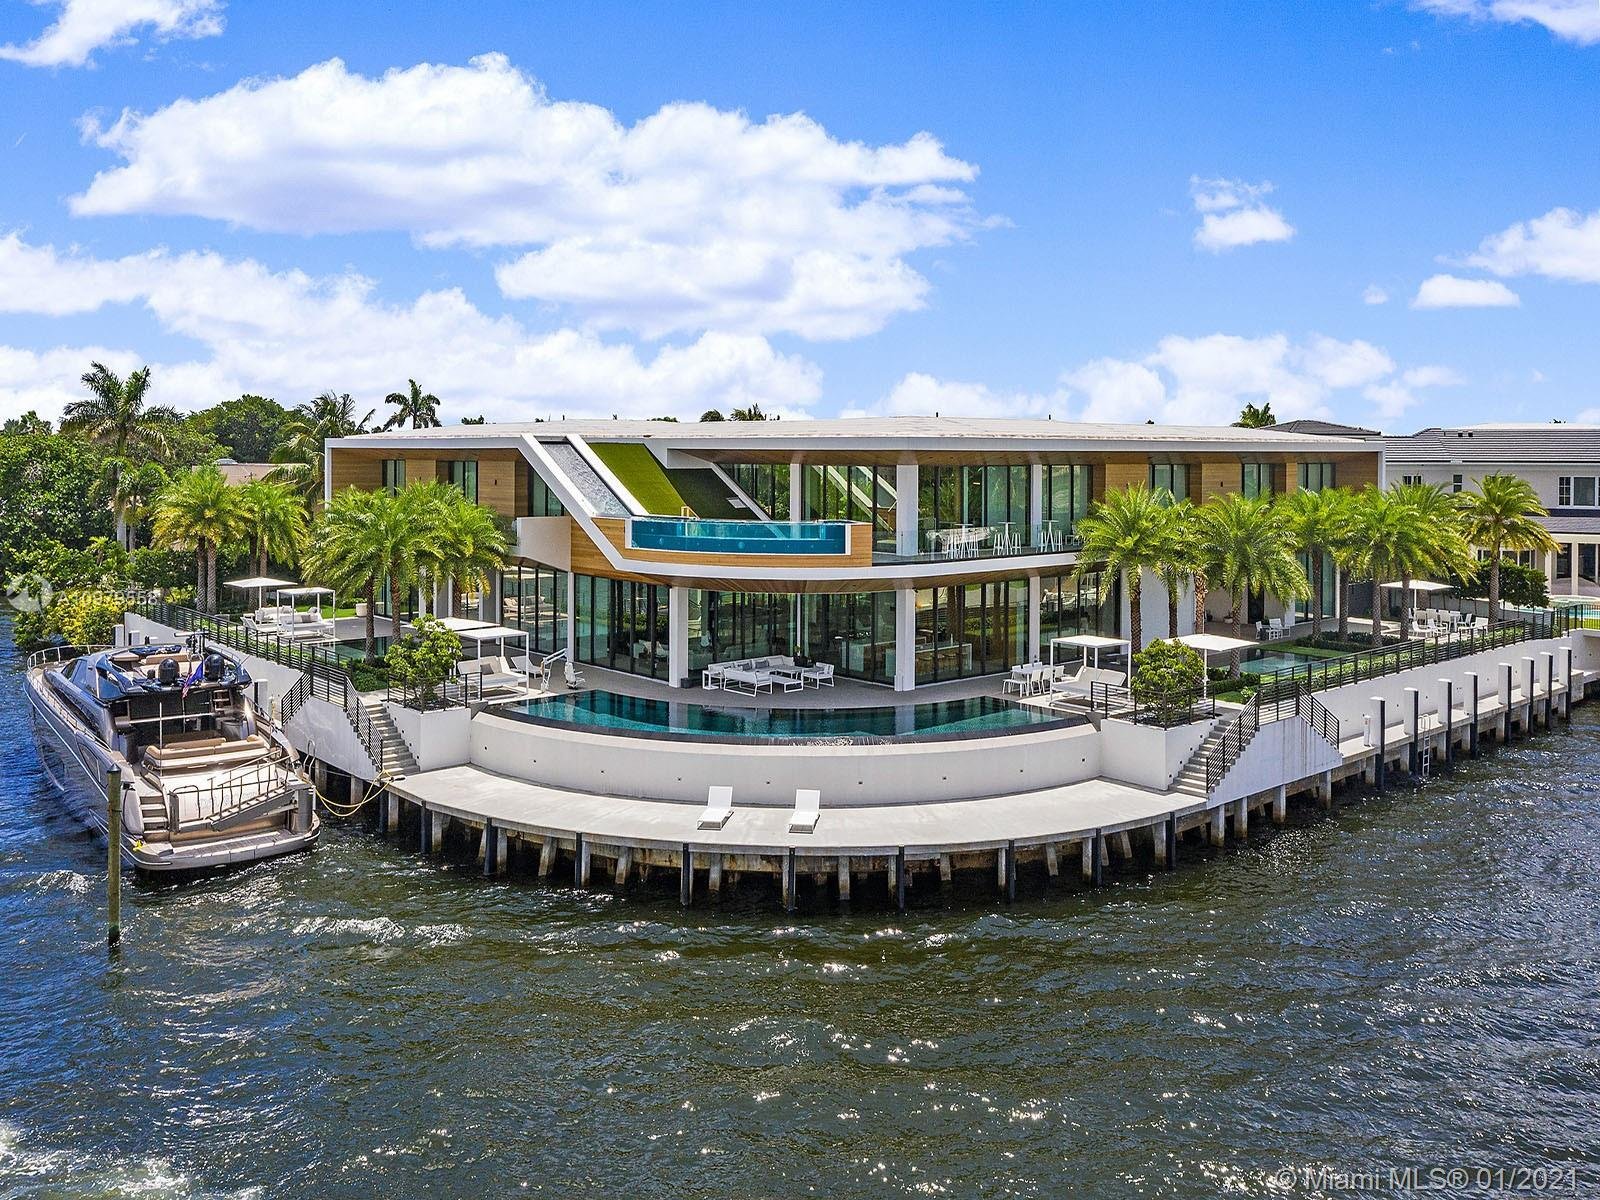 A fresh departure from expected Boca Raton luxury, this spectacular contemporary residence on an ove